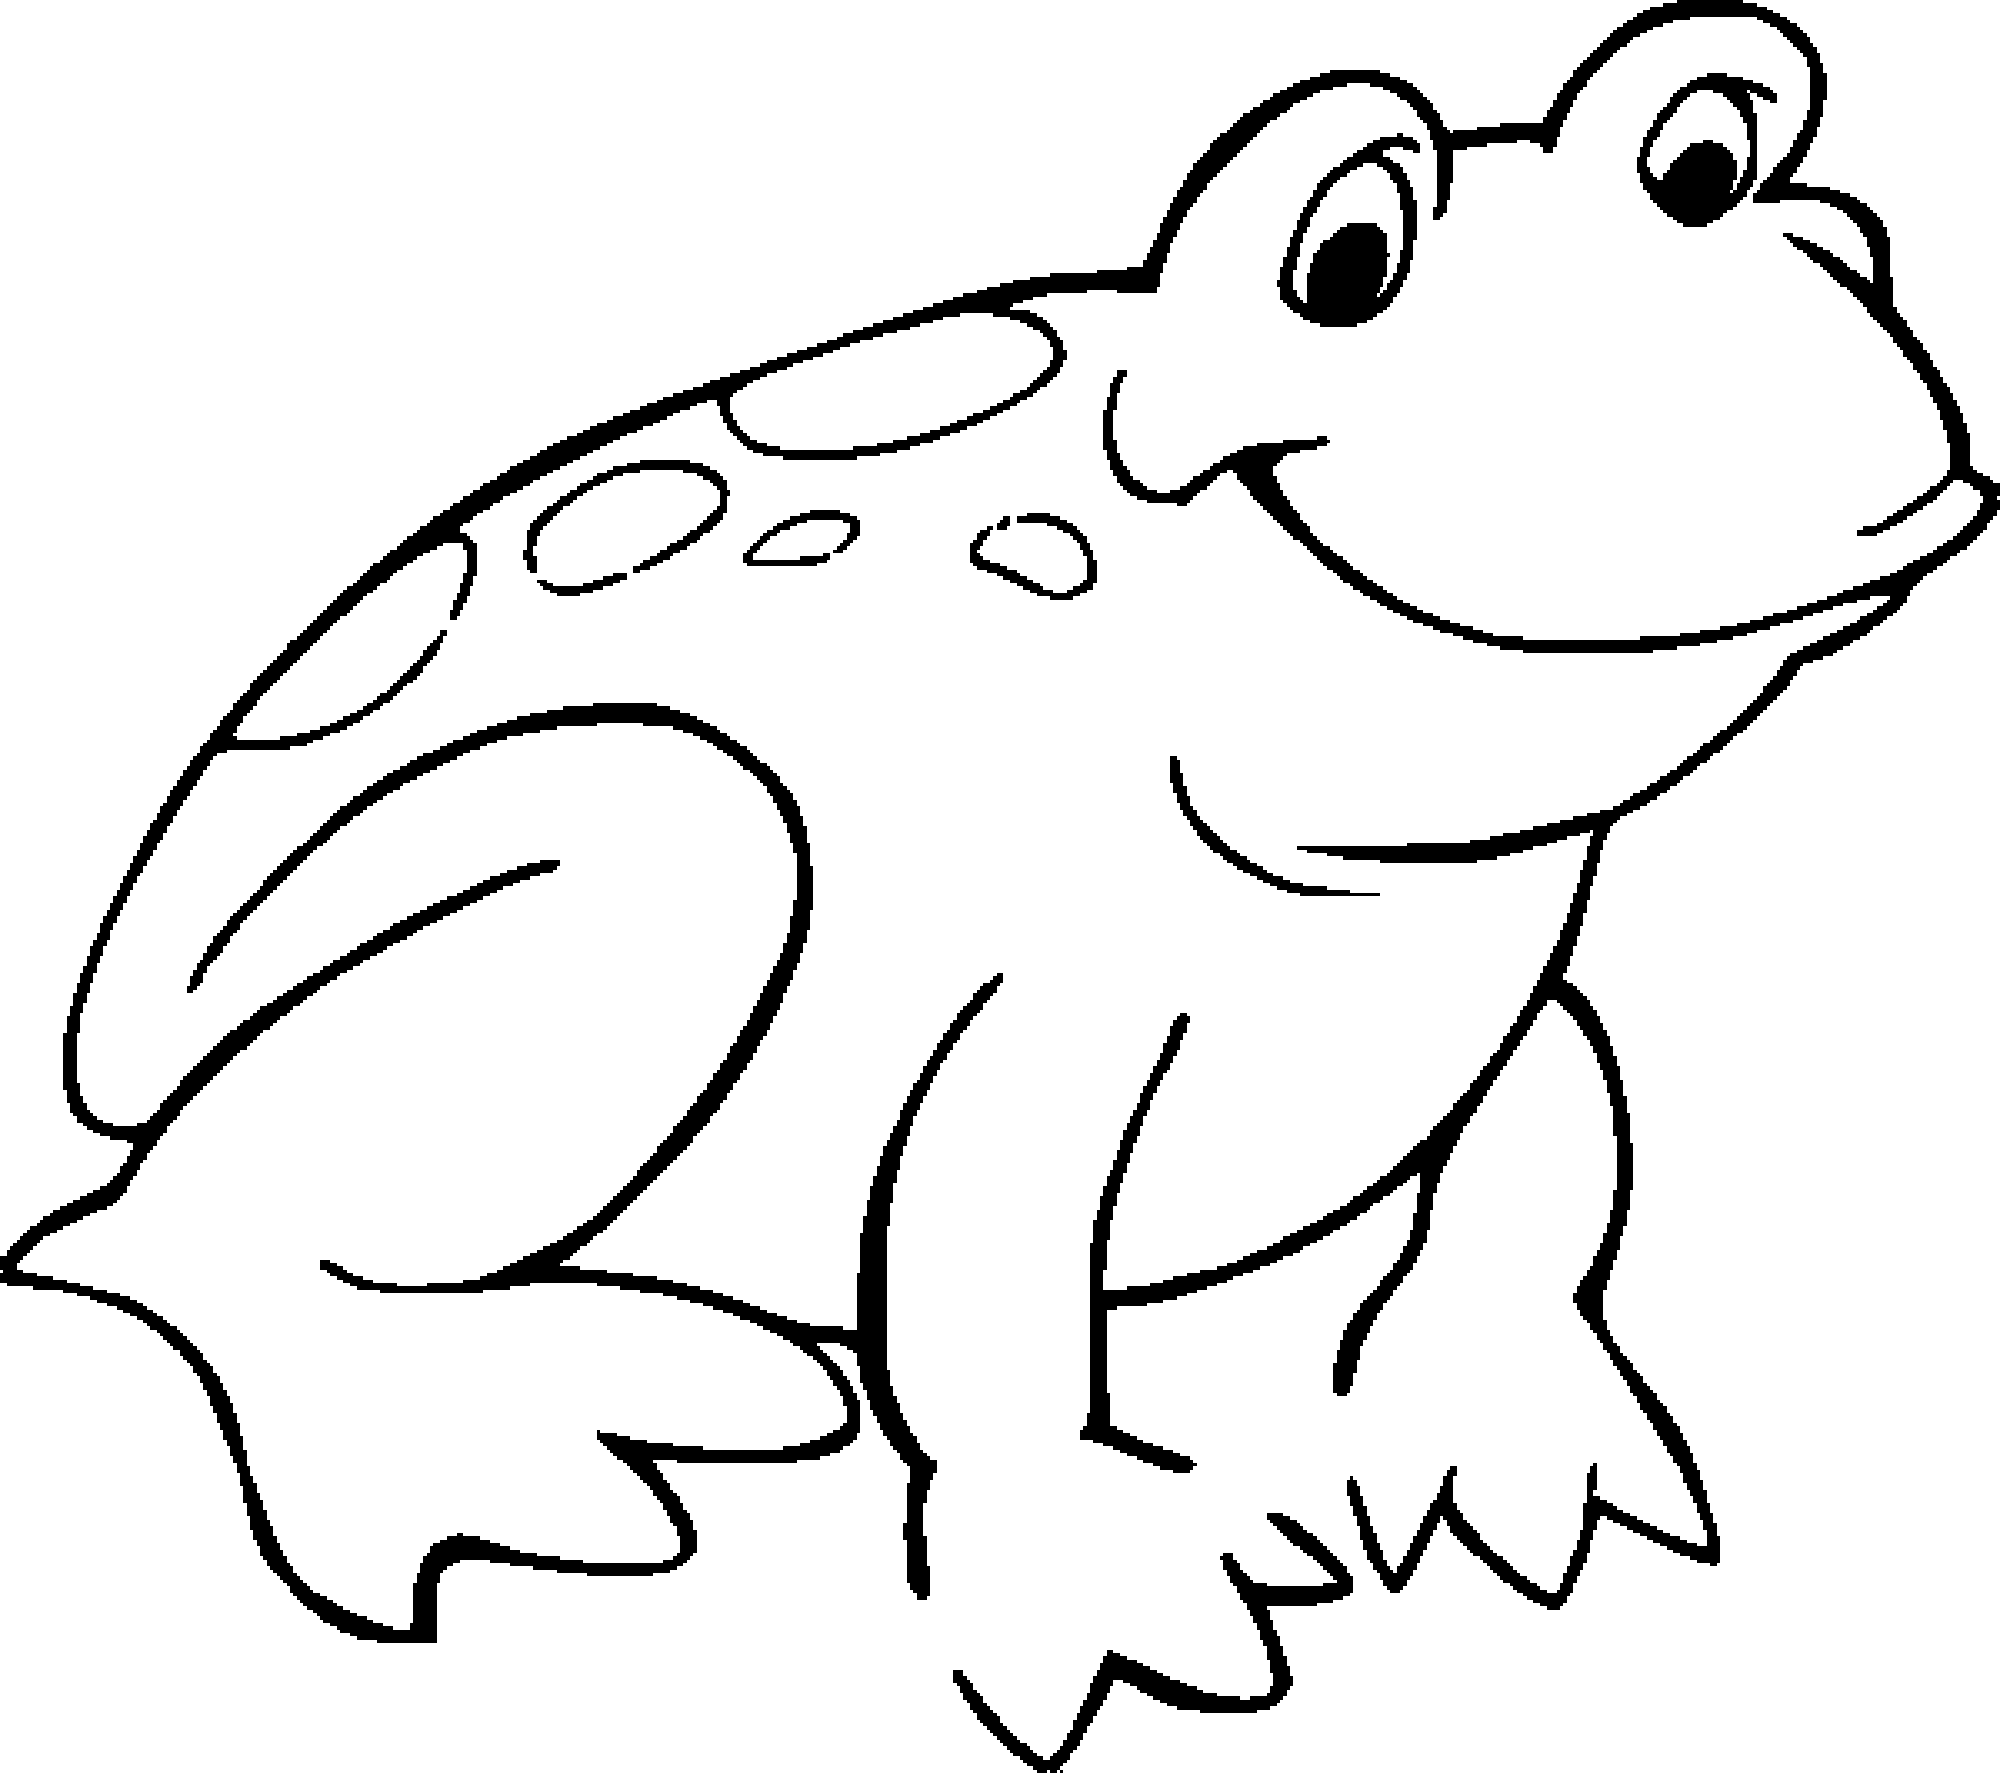 frog coloring pages to print print download frog coloring pages theme for kids frog pages to print coloring